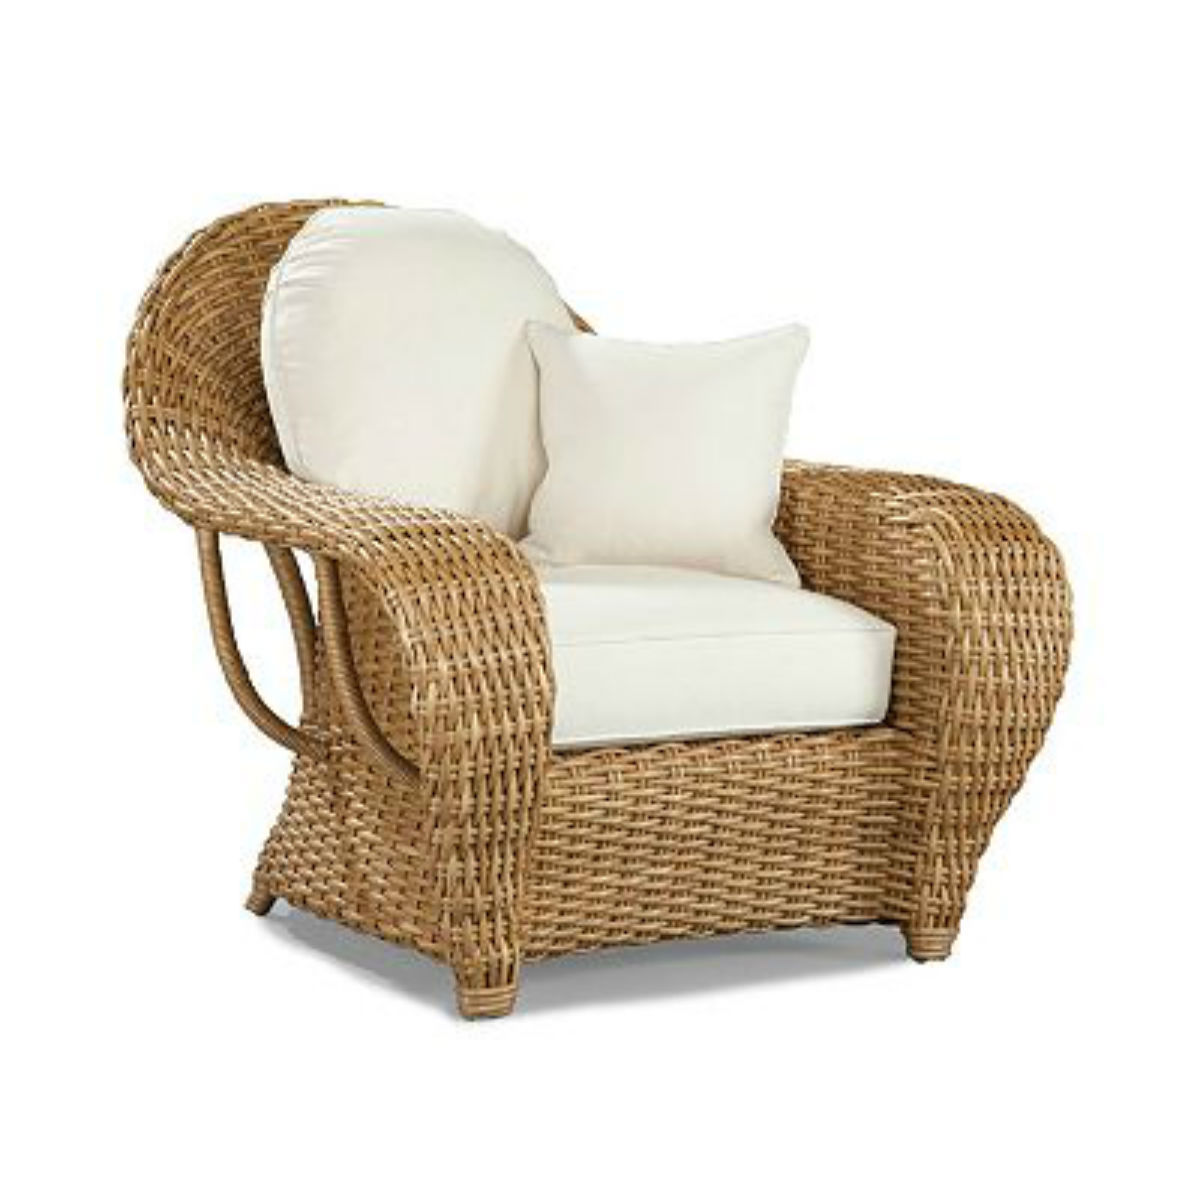 Natural Wicker Furniture Images